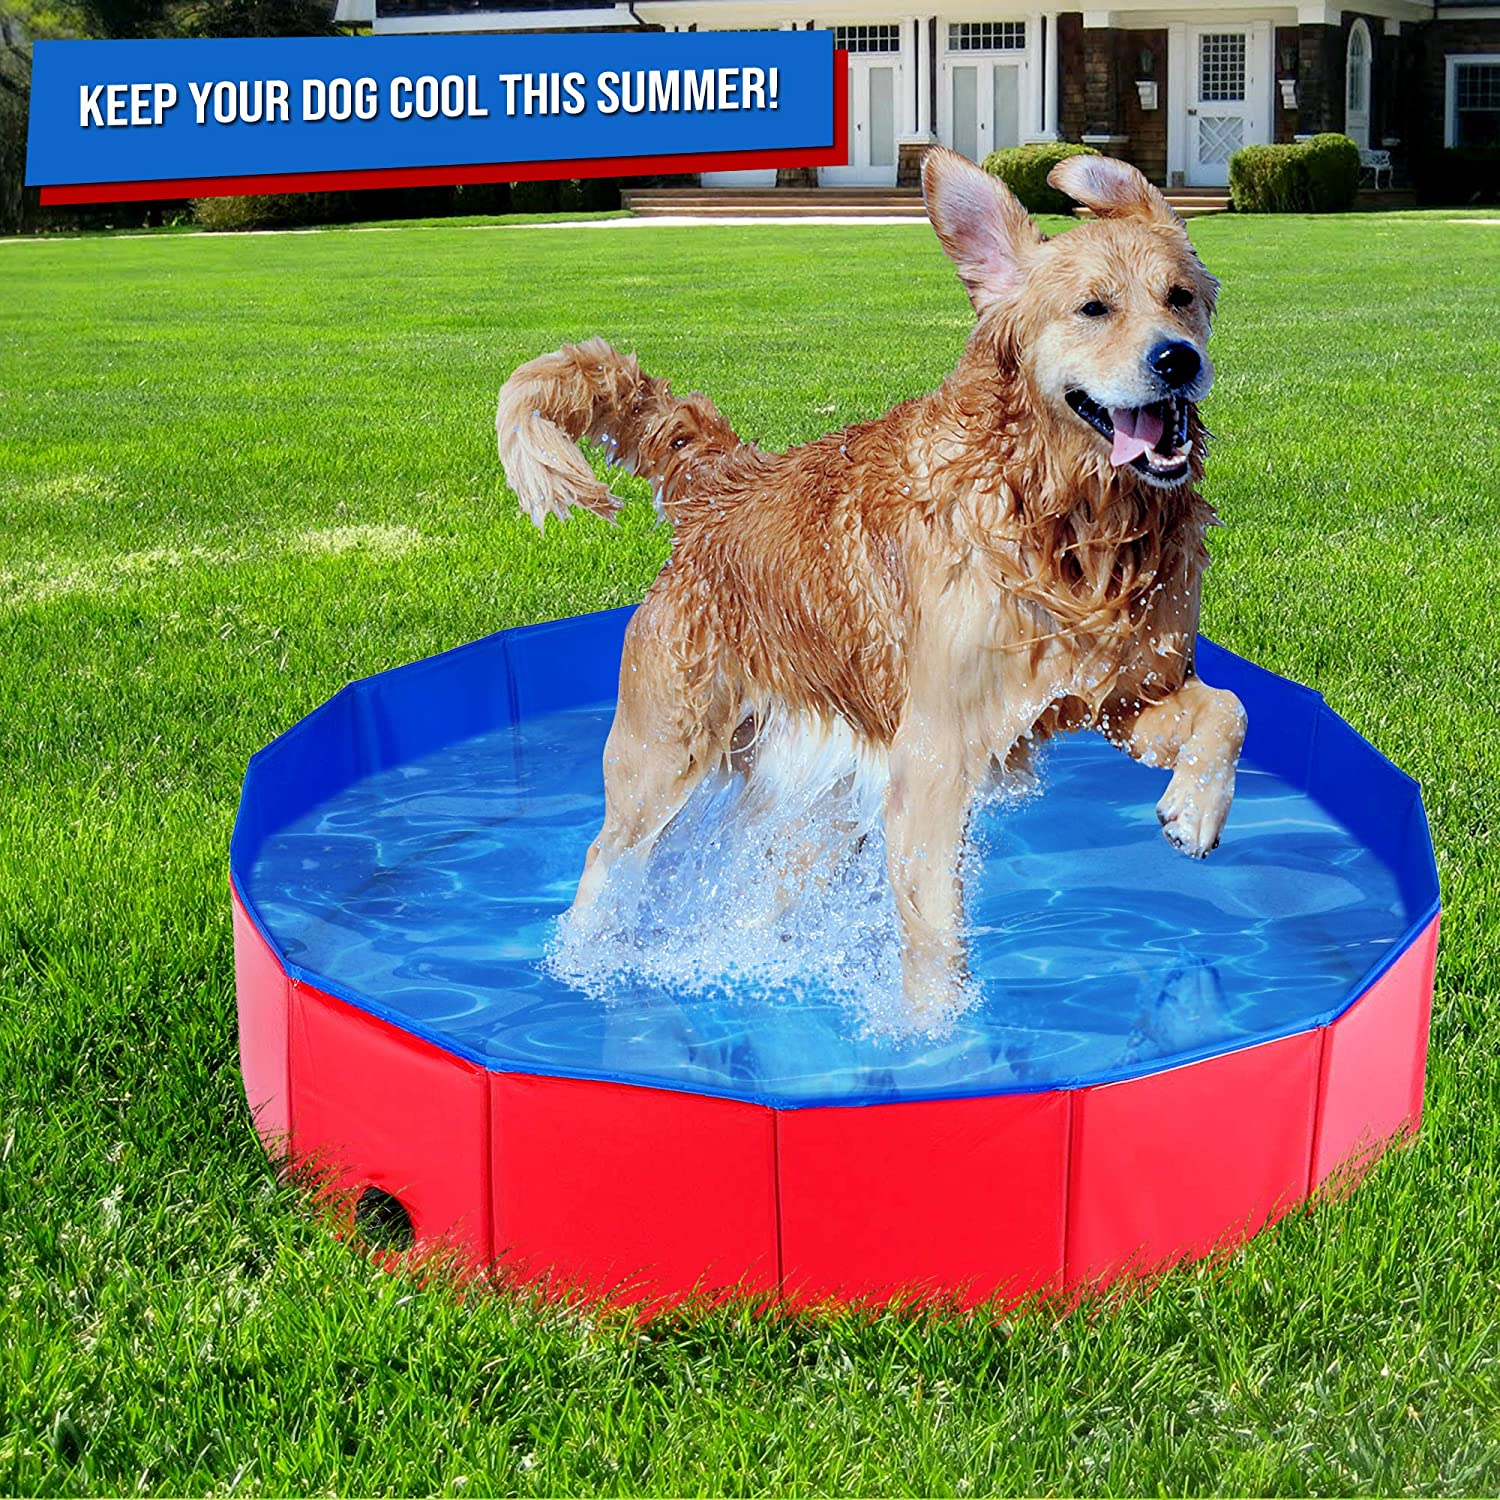 Sturdy High Quality PVC with Reinforced Oxford Walls Ideal for Pets Puppy Cats Kids Pool 120X30cm Foldable Dog Paddling Pool Medium Bath Tub or Ball Pit Pet Swimming Pool